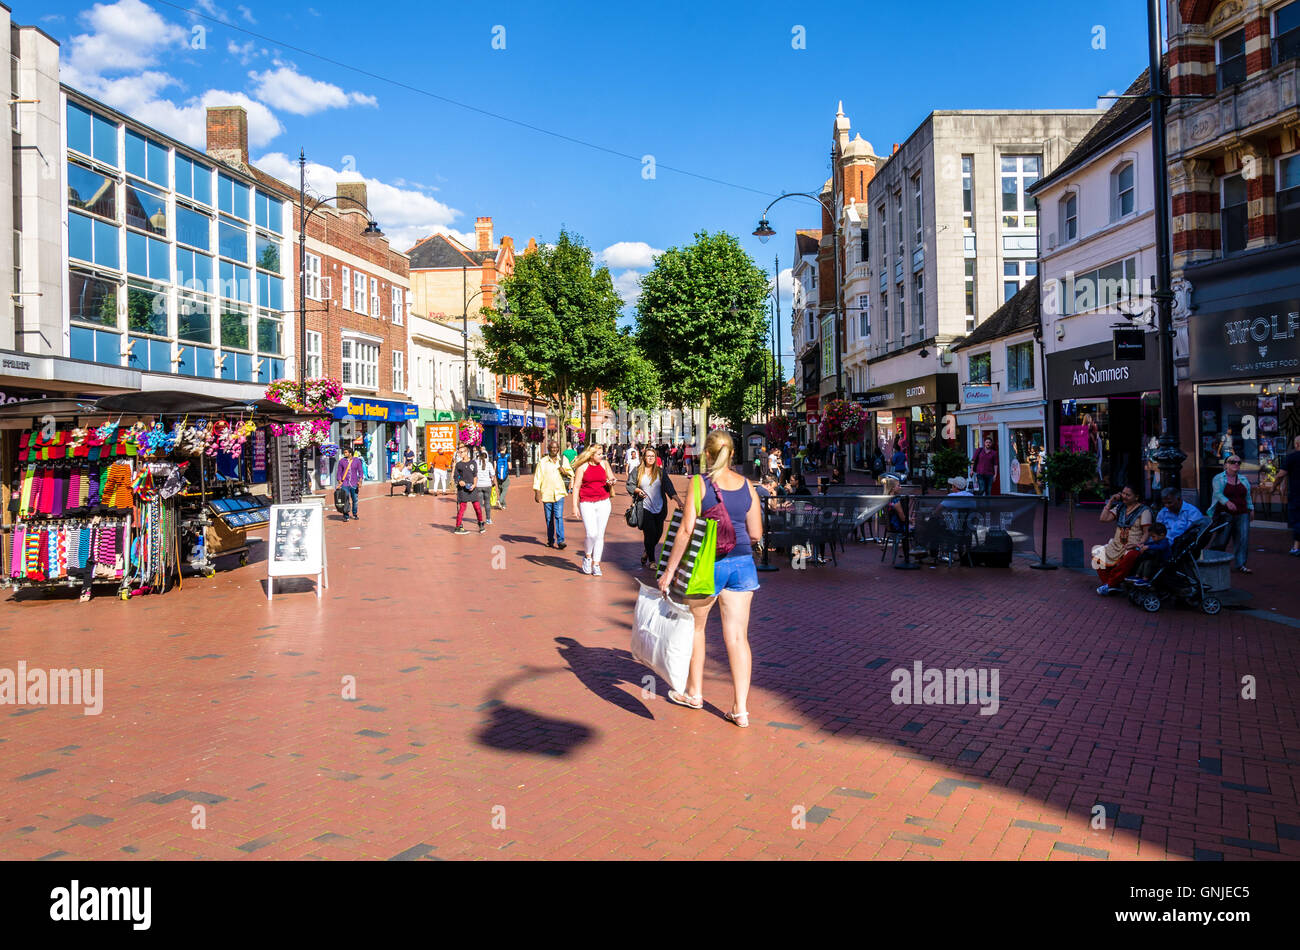 Broad Street in Reading is the main shopping street in the town centre. Stock Photo